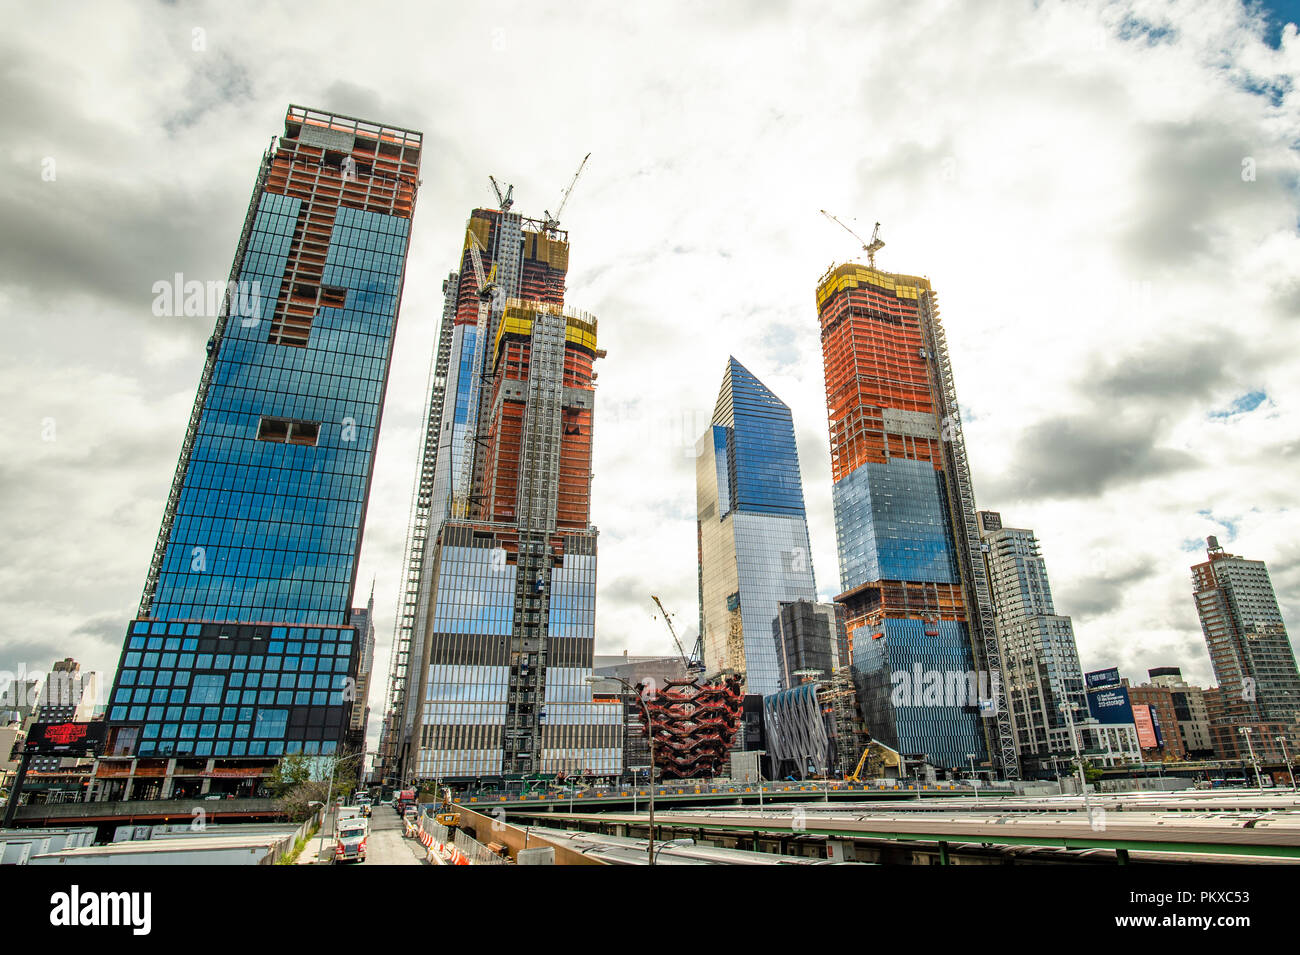 New York, USA, October 30, 2017: Hudson Yards train depot from the High Line. New York City skyline with urban skyscrapers in construction. View from  Stock Photo